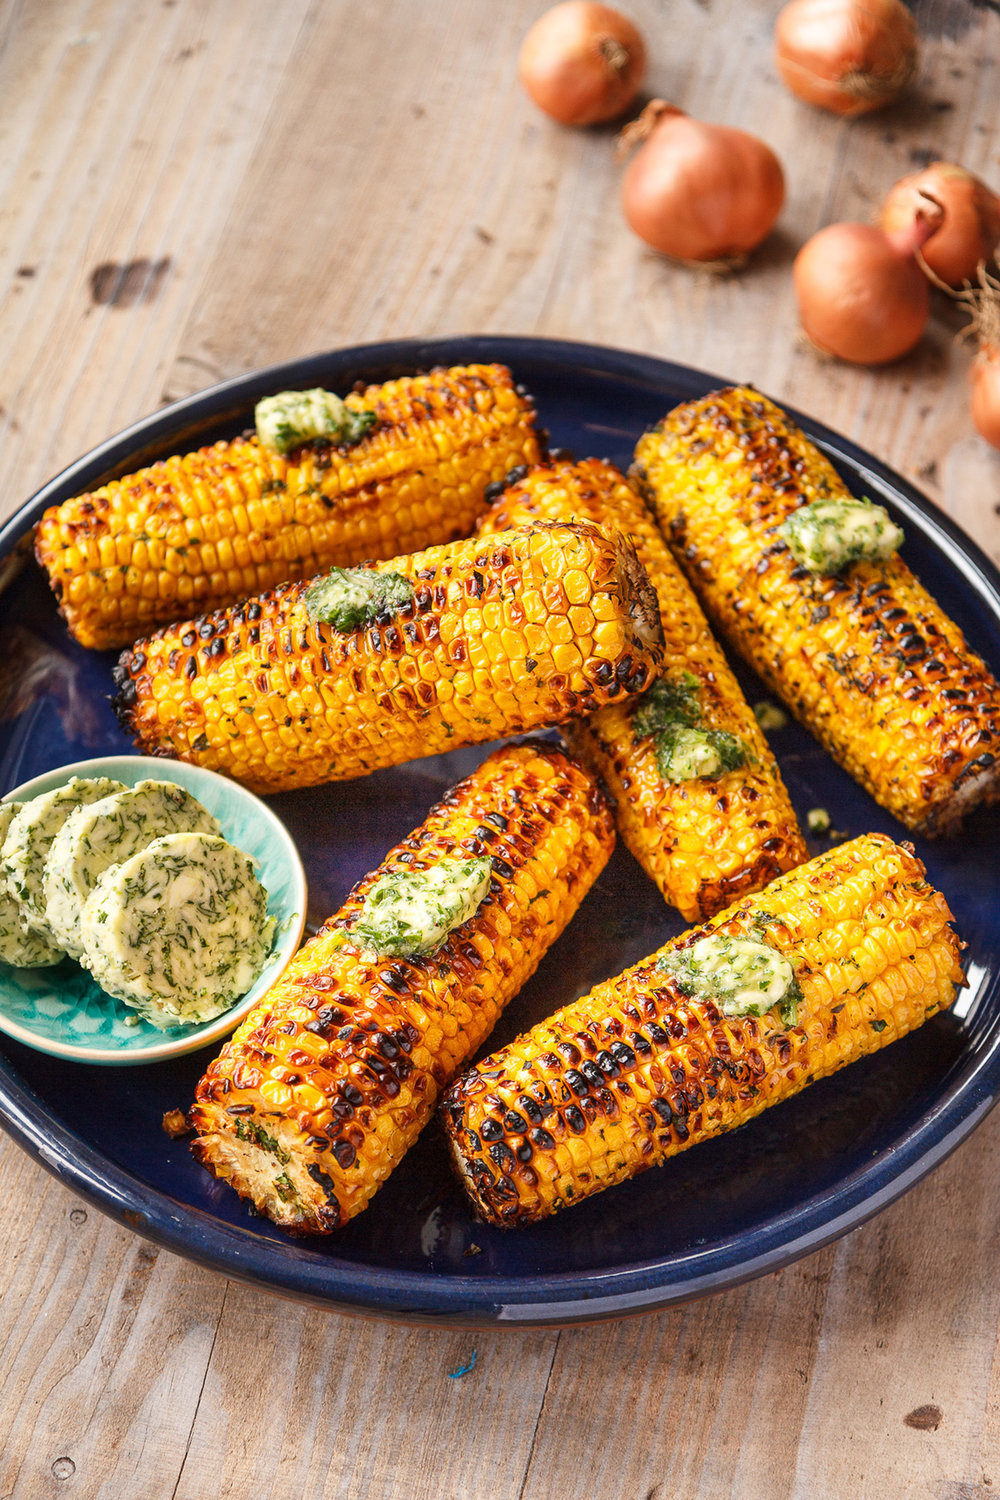 Barbecued corn on the cob with shallot herb butter.jpg